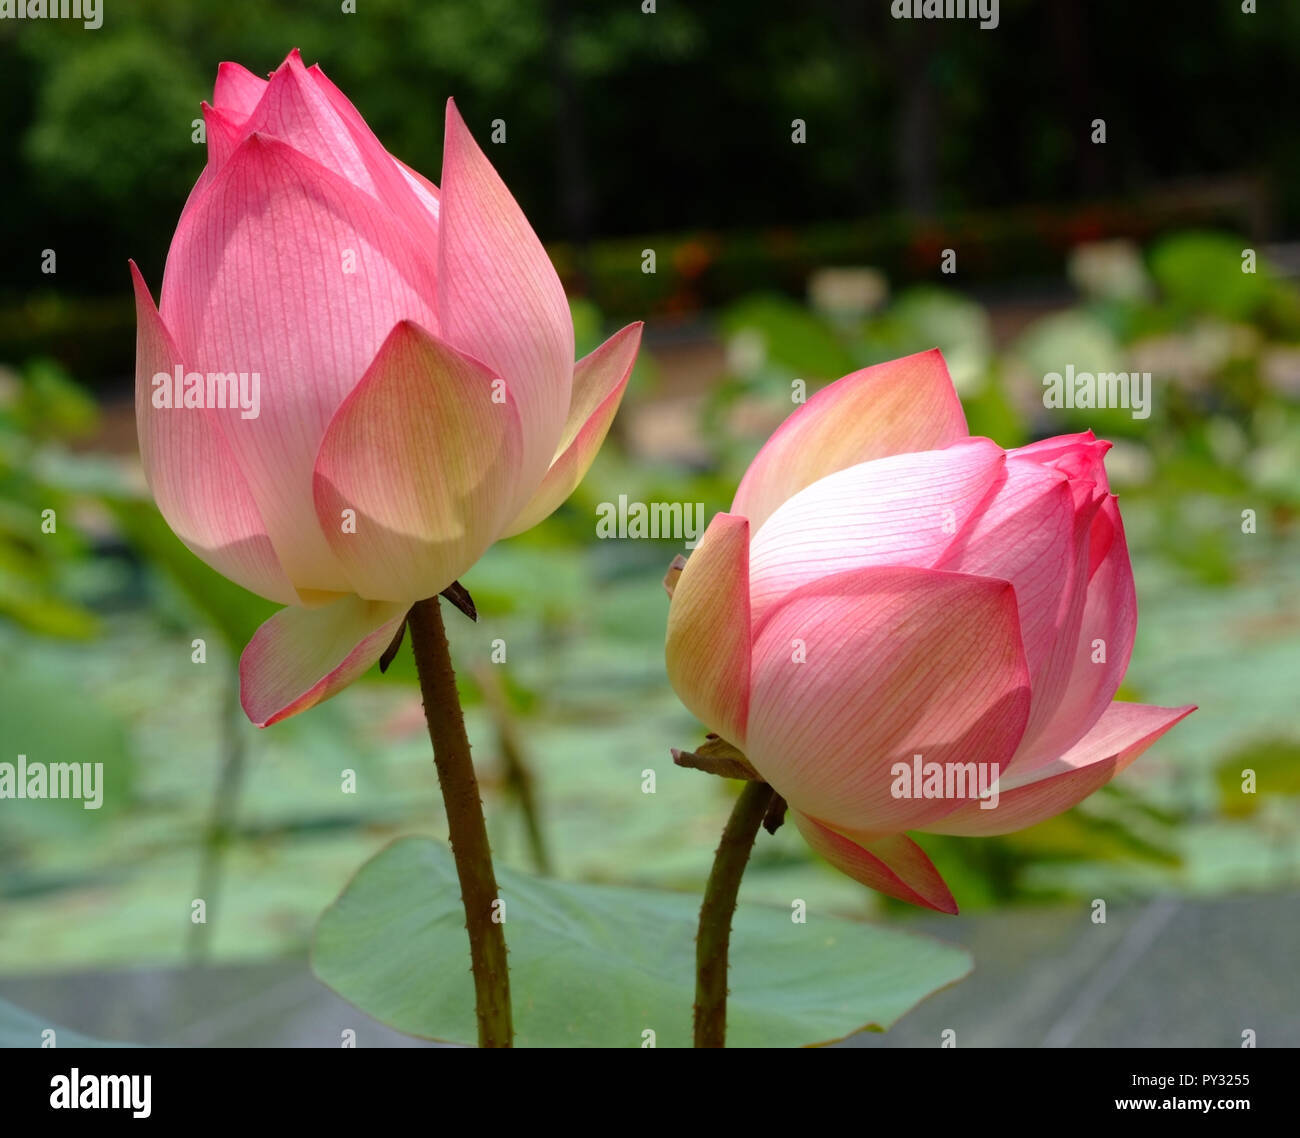 Lotus Flower Rare Flower Ancient Flower Symbol Of Purity Symbol